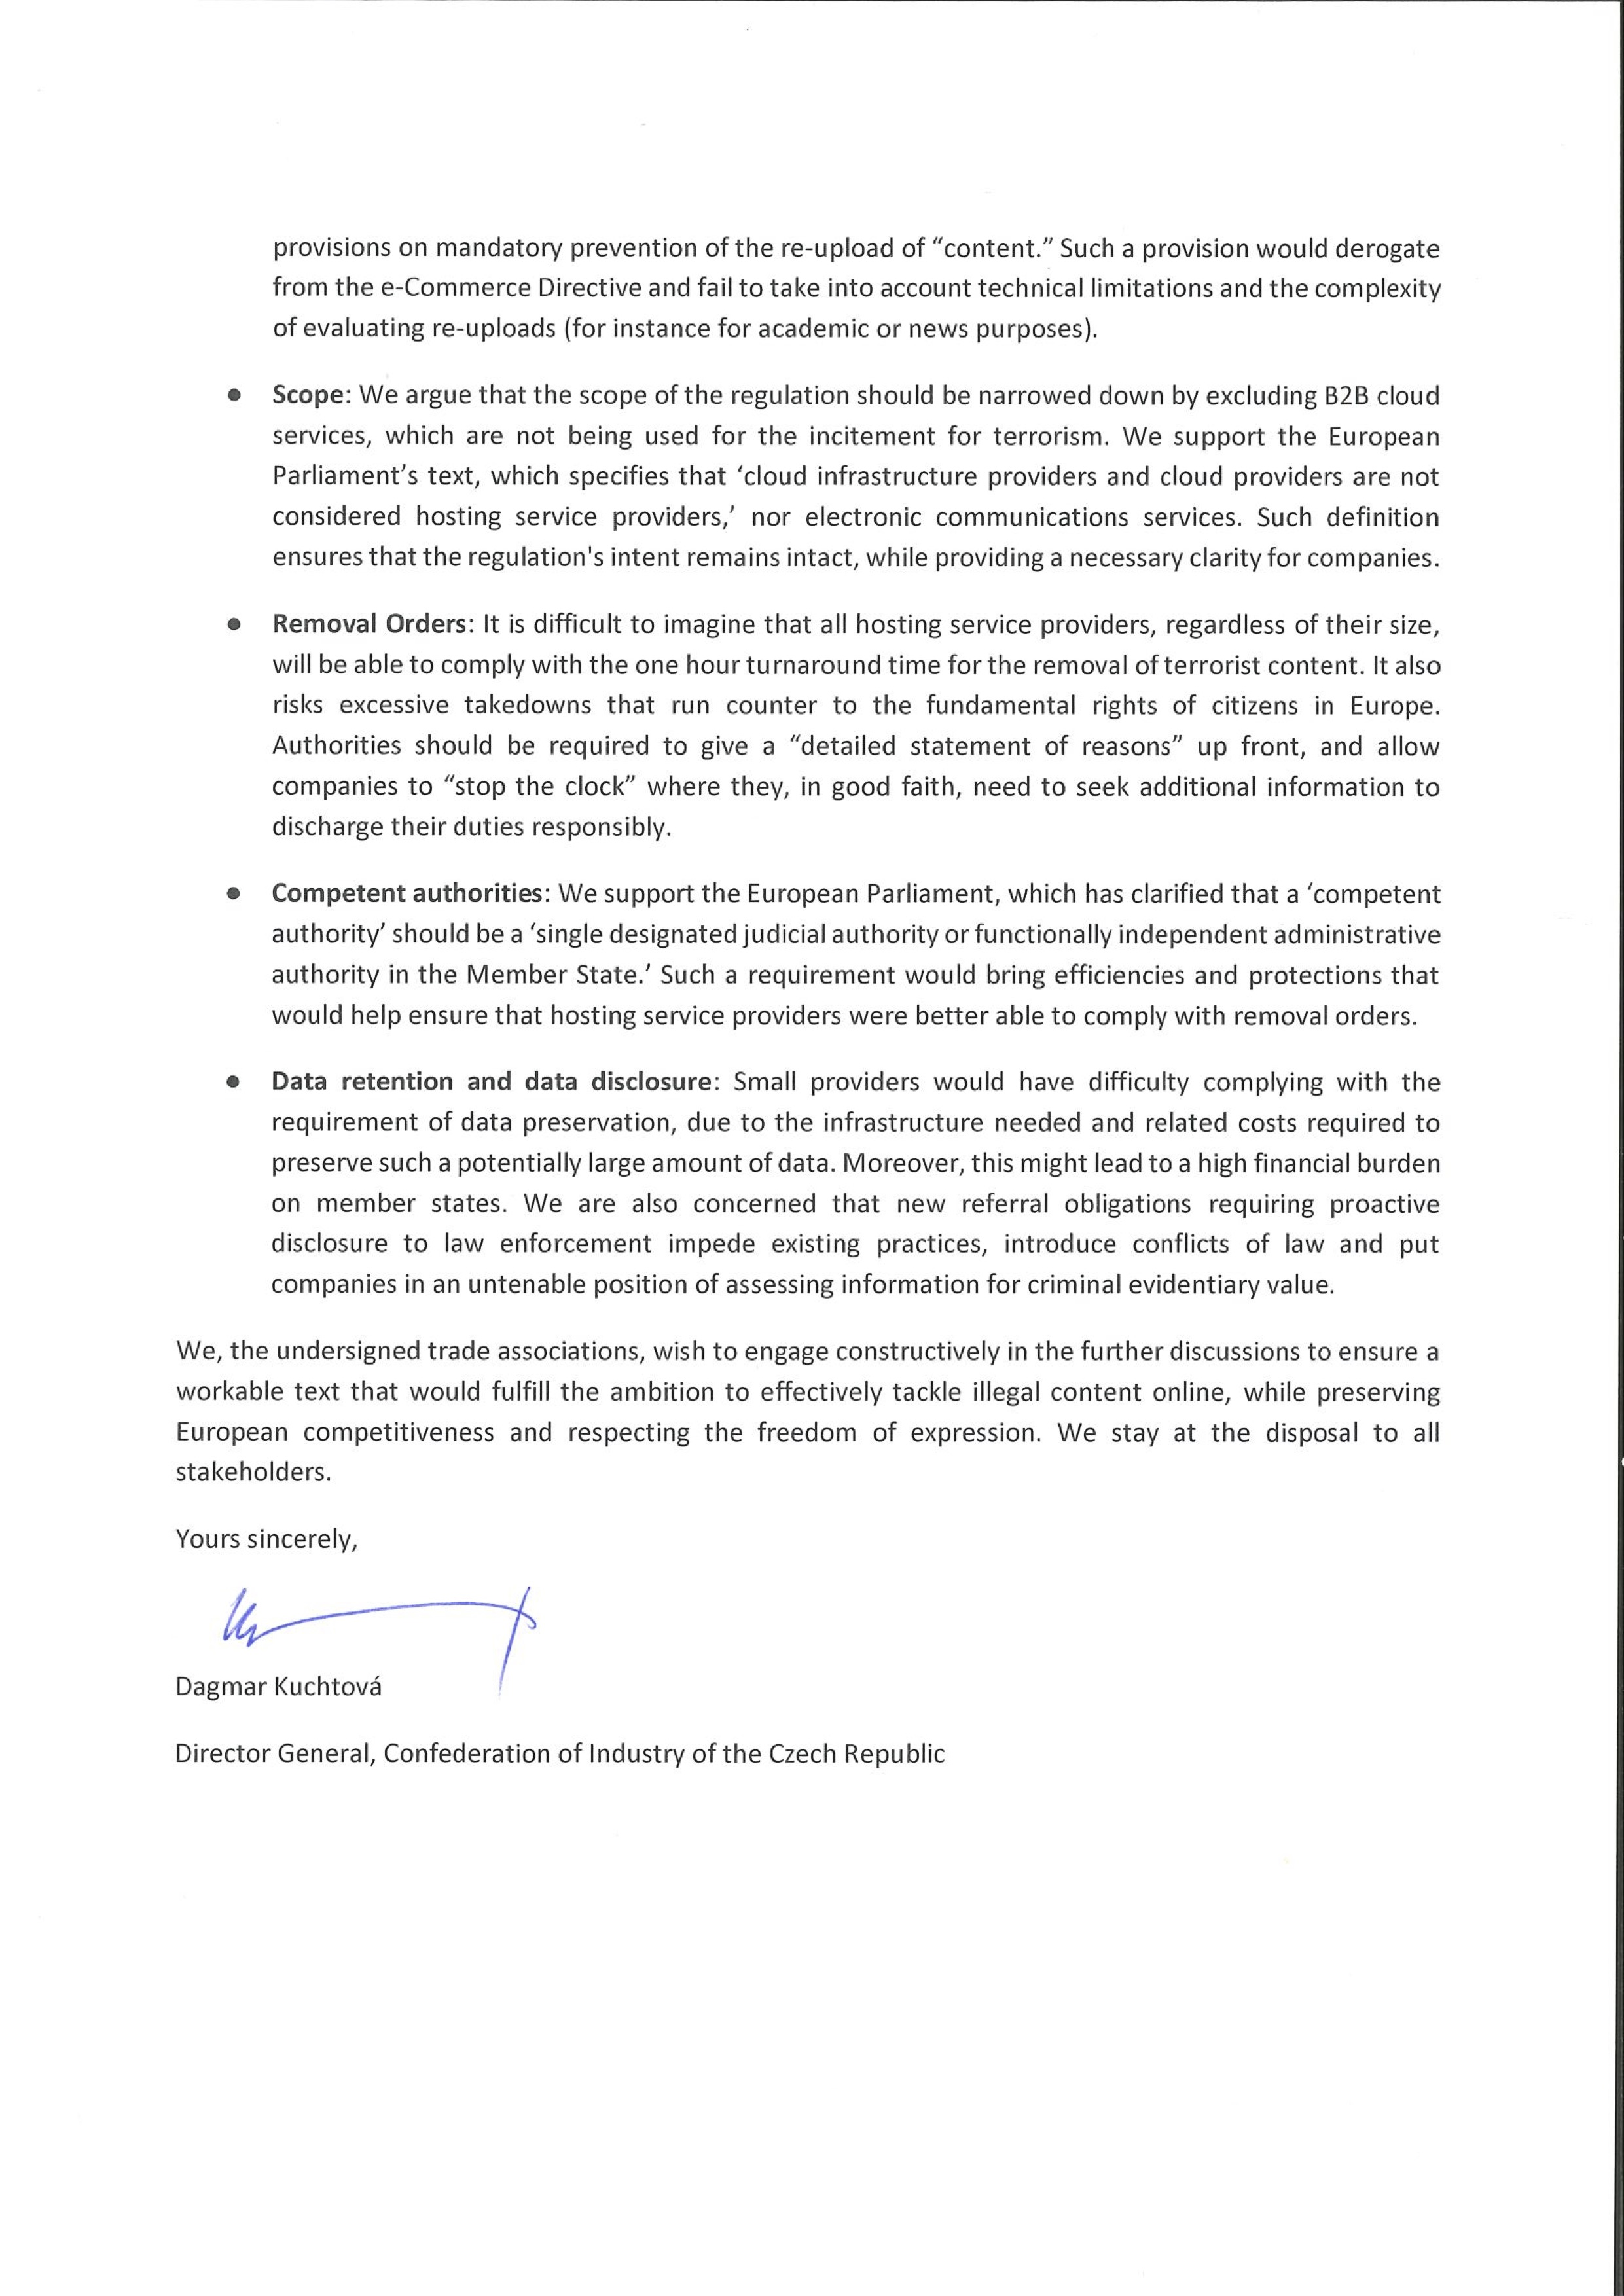 Joint letter on terrorist content_signed_2